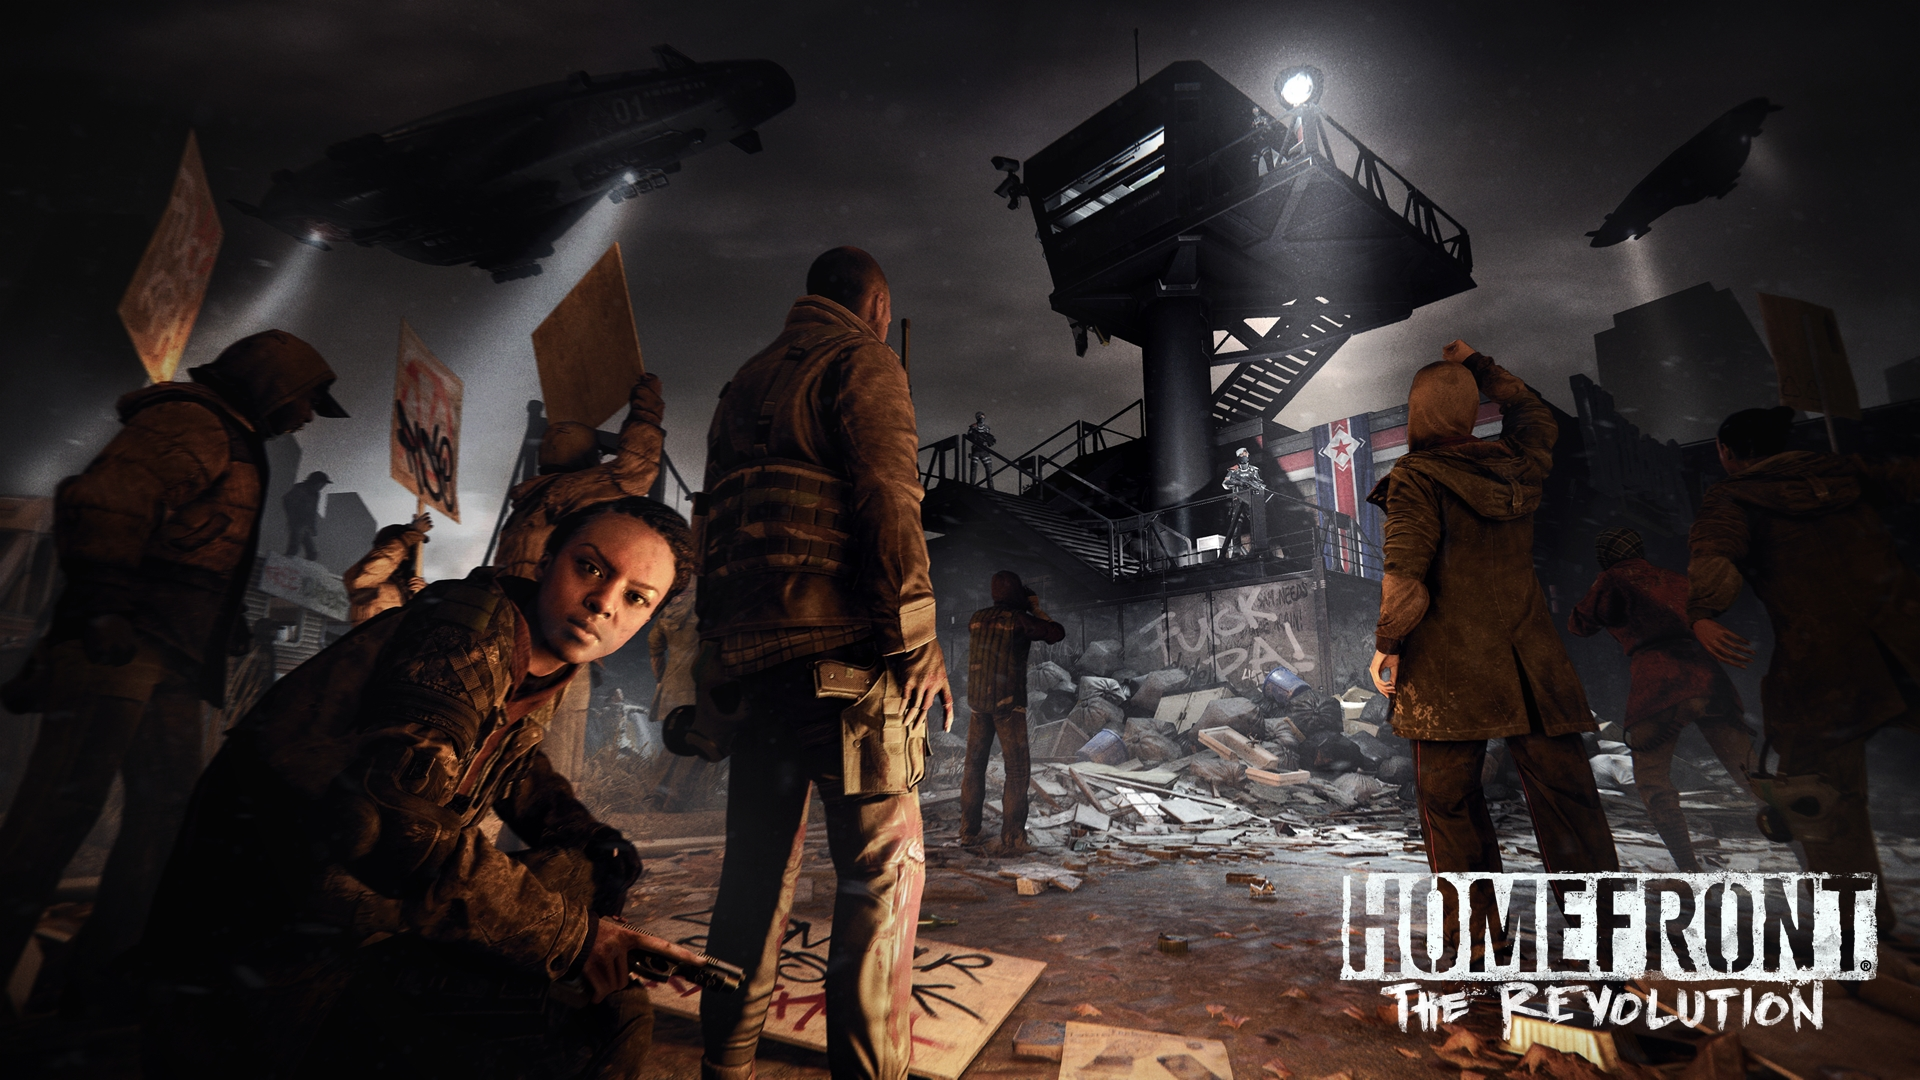 #Winning achievement for Homefront: The Revolution on Xbox One